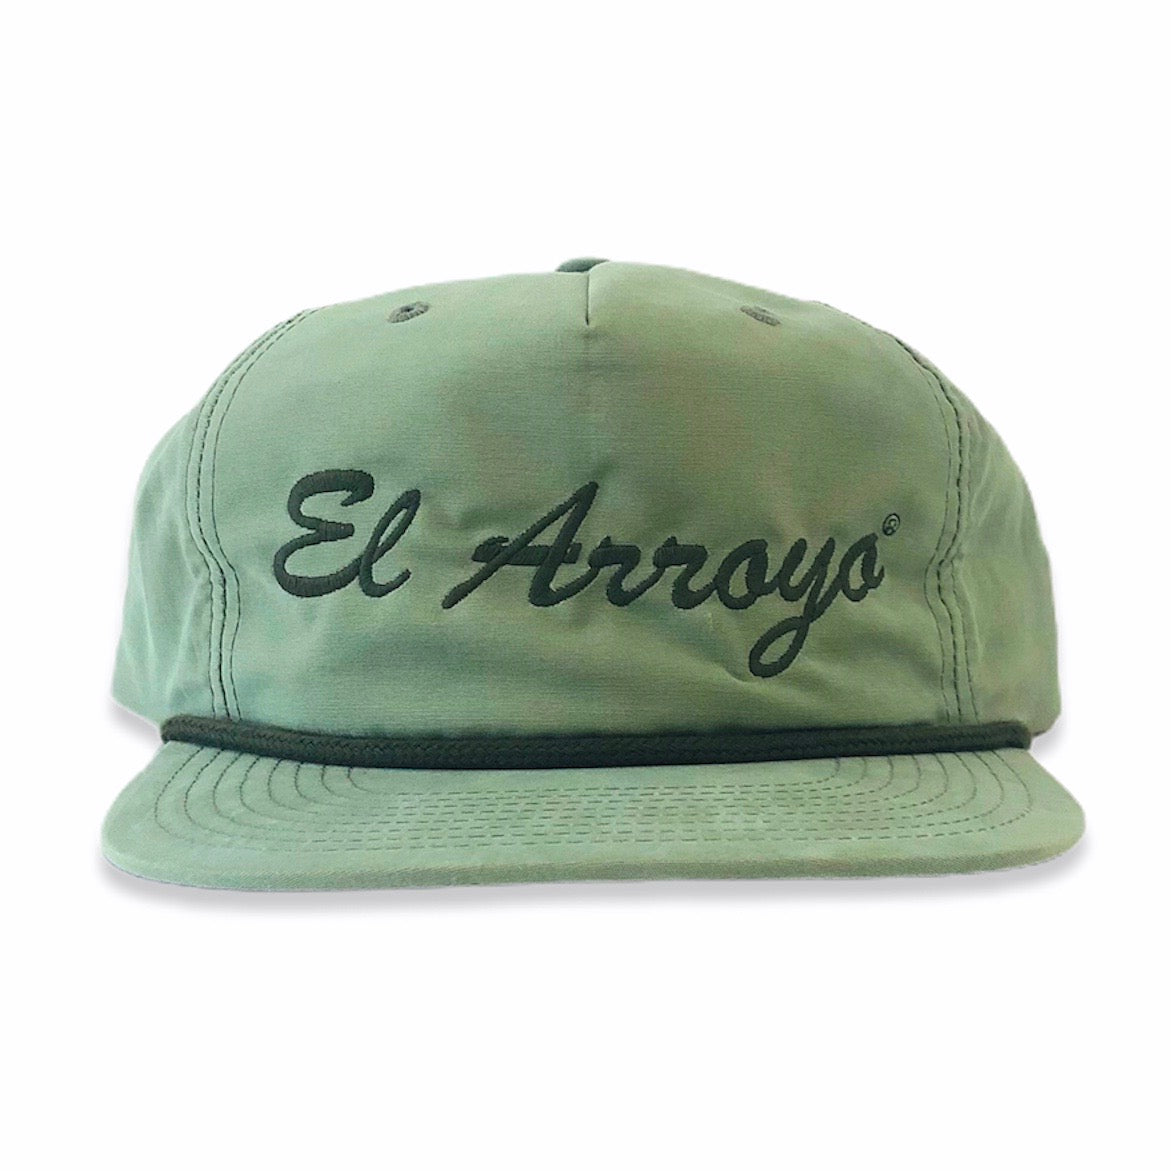 Green El Arroyo Hat